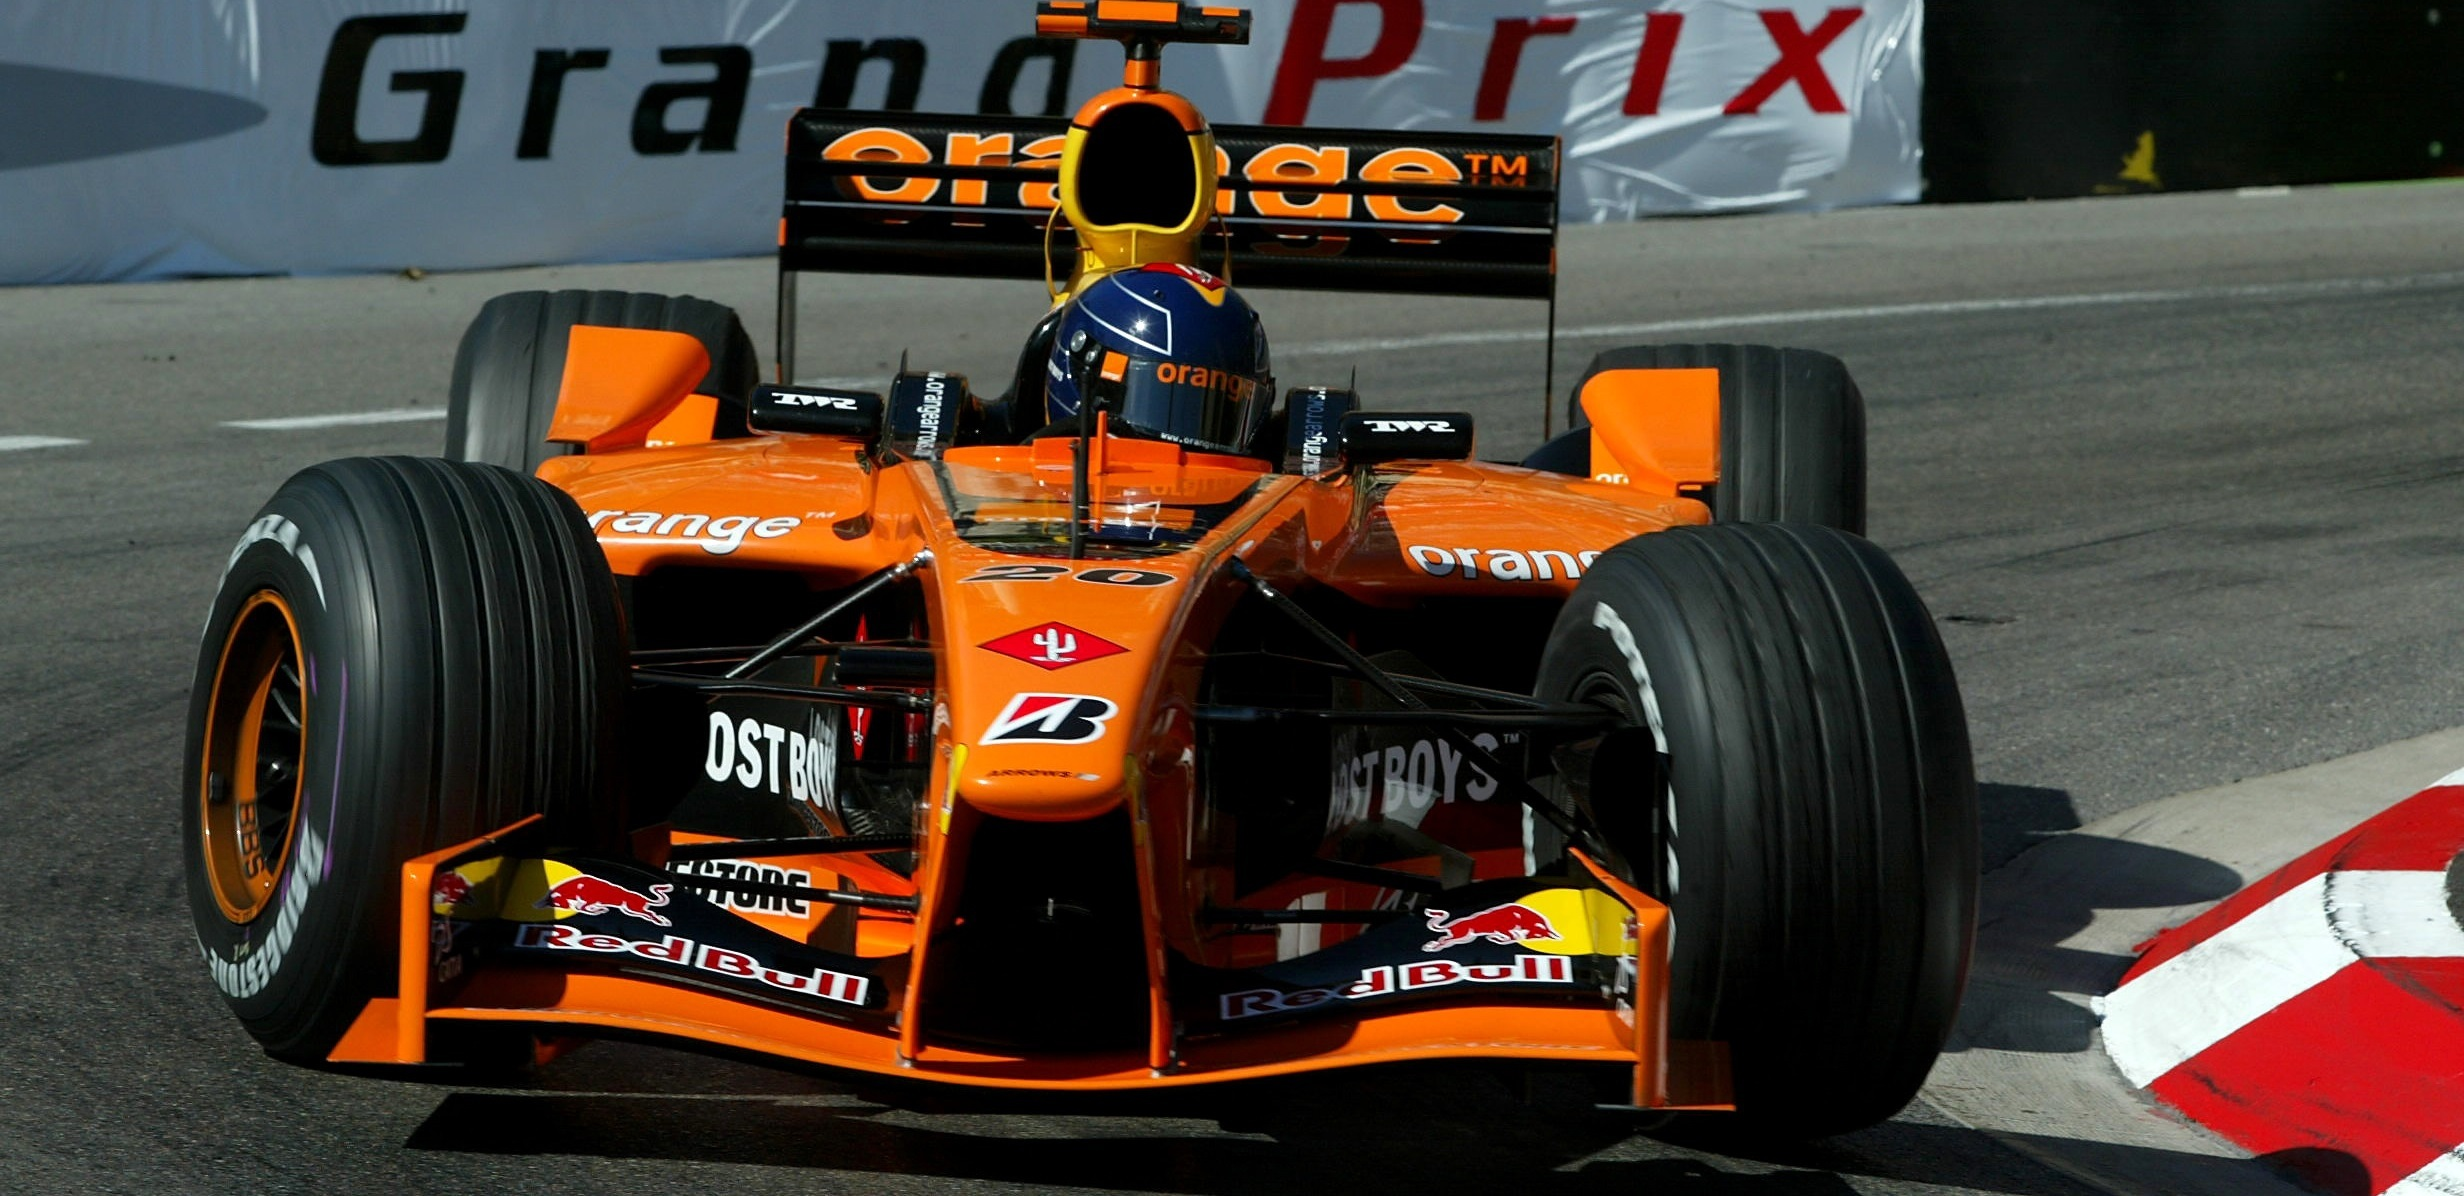 Arrows A23 GP Mónaco 2002